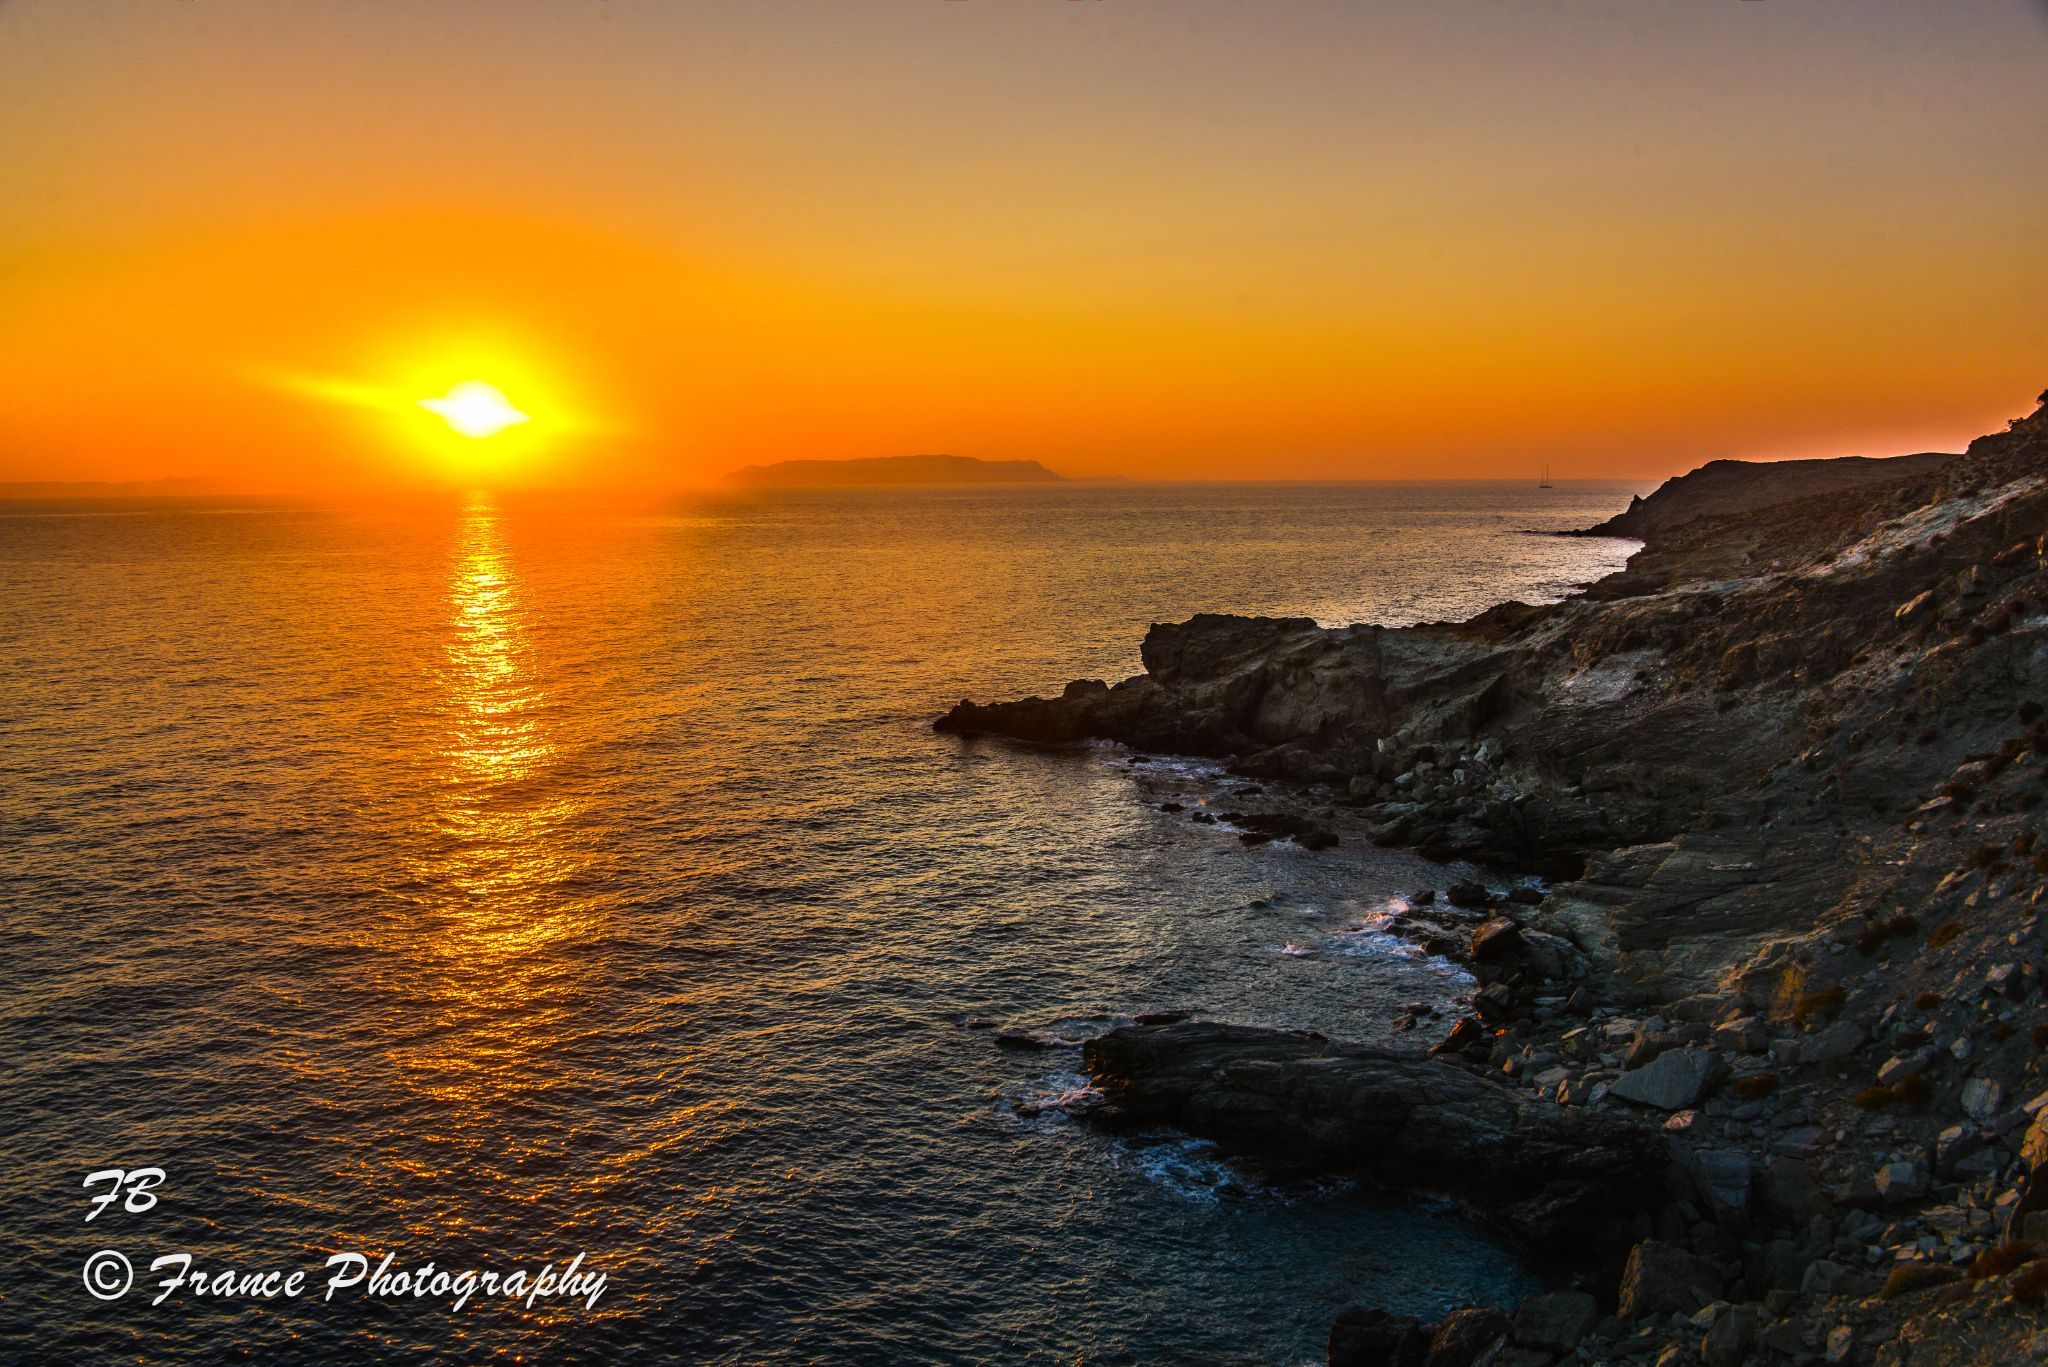 Sunset at Folegandros by France Photography